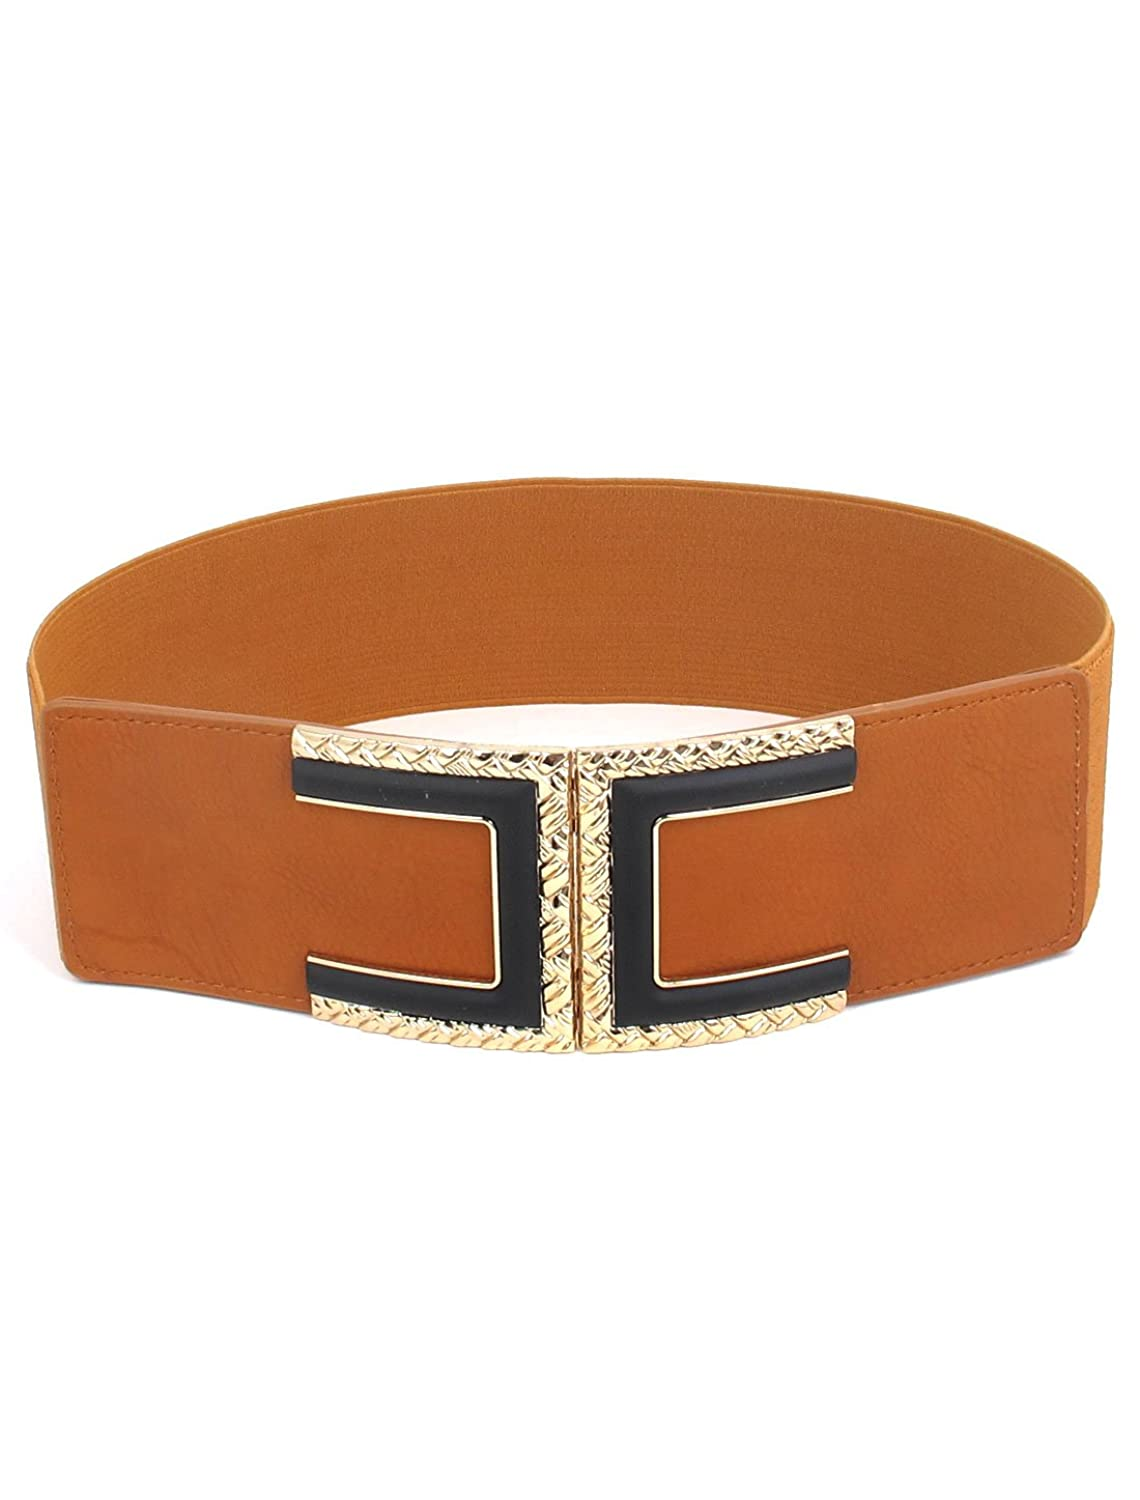 uxcell Metal Faux Leather Women Buckle Cinch Waist Belt Band 6cm Width Brown